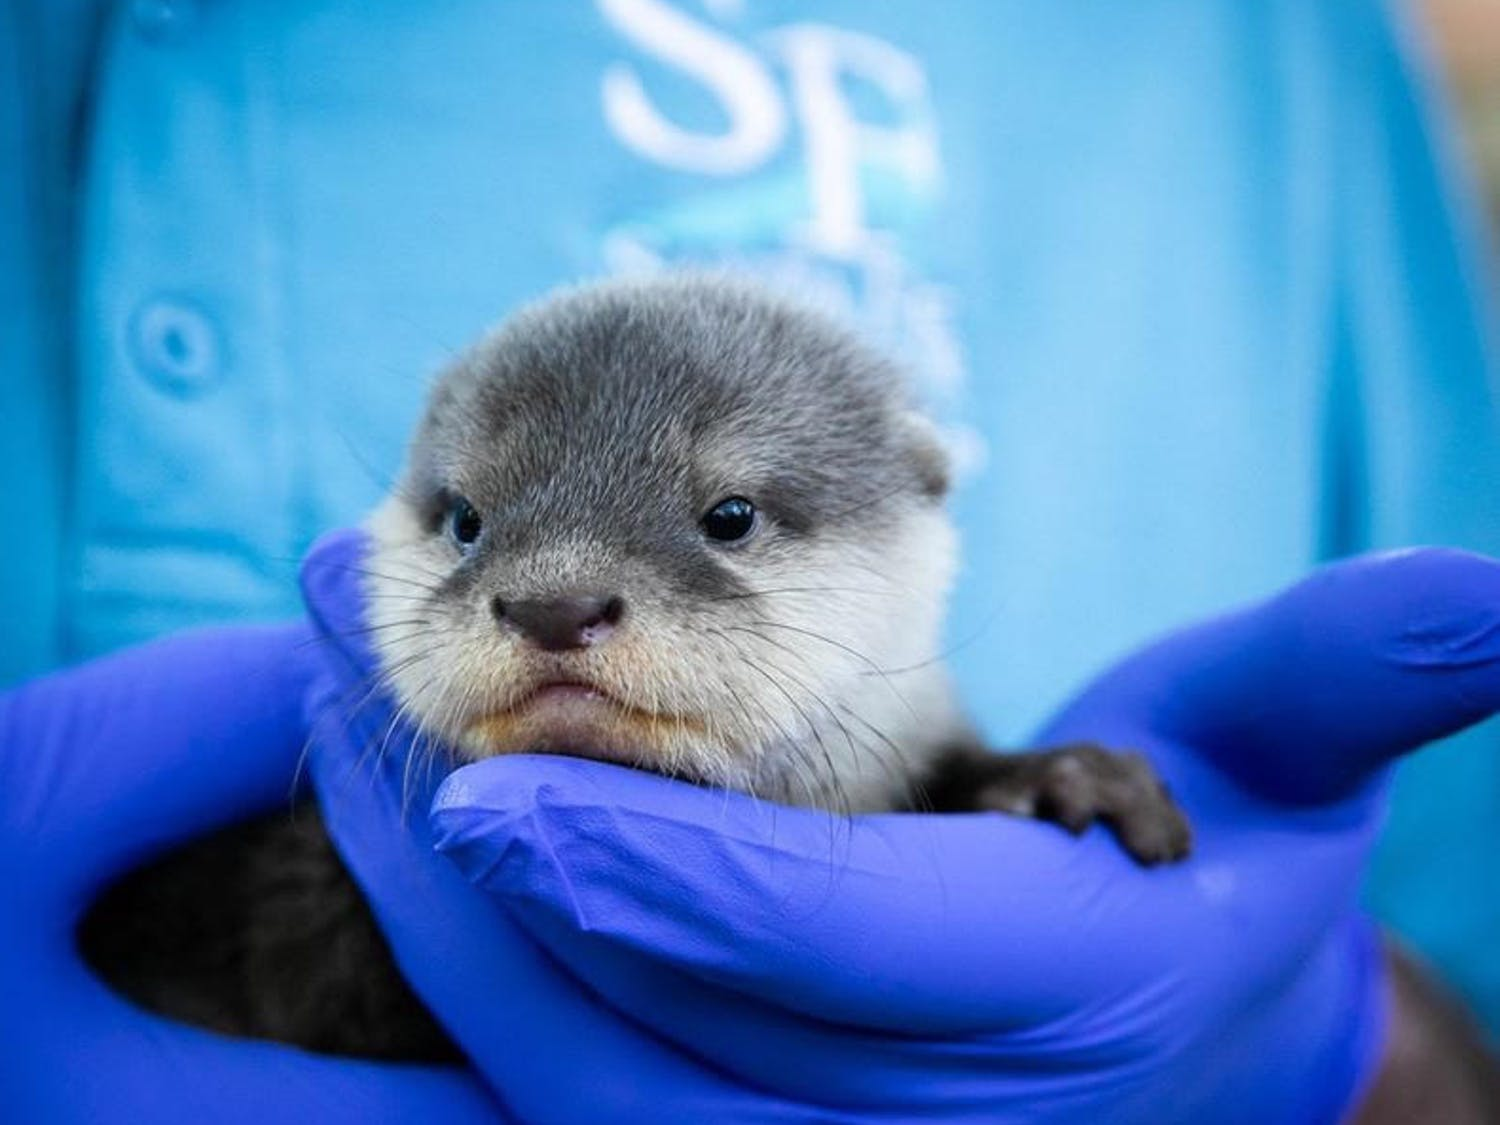 A zookeeper holds a new Asian small-clawed otter pup at the Santa Fe College Teaching Zoo.